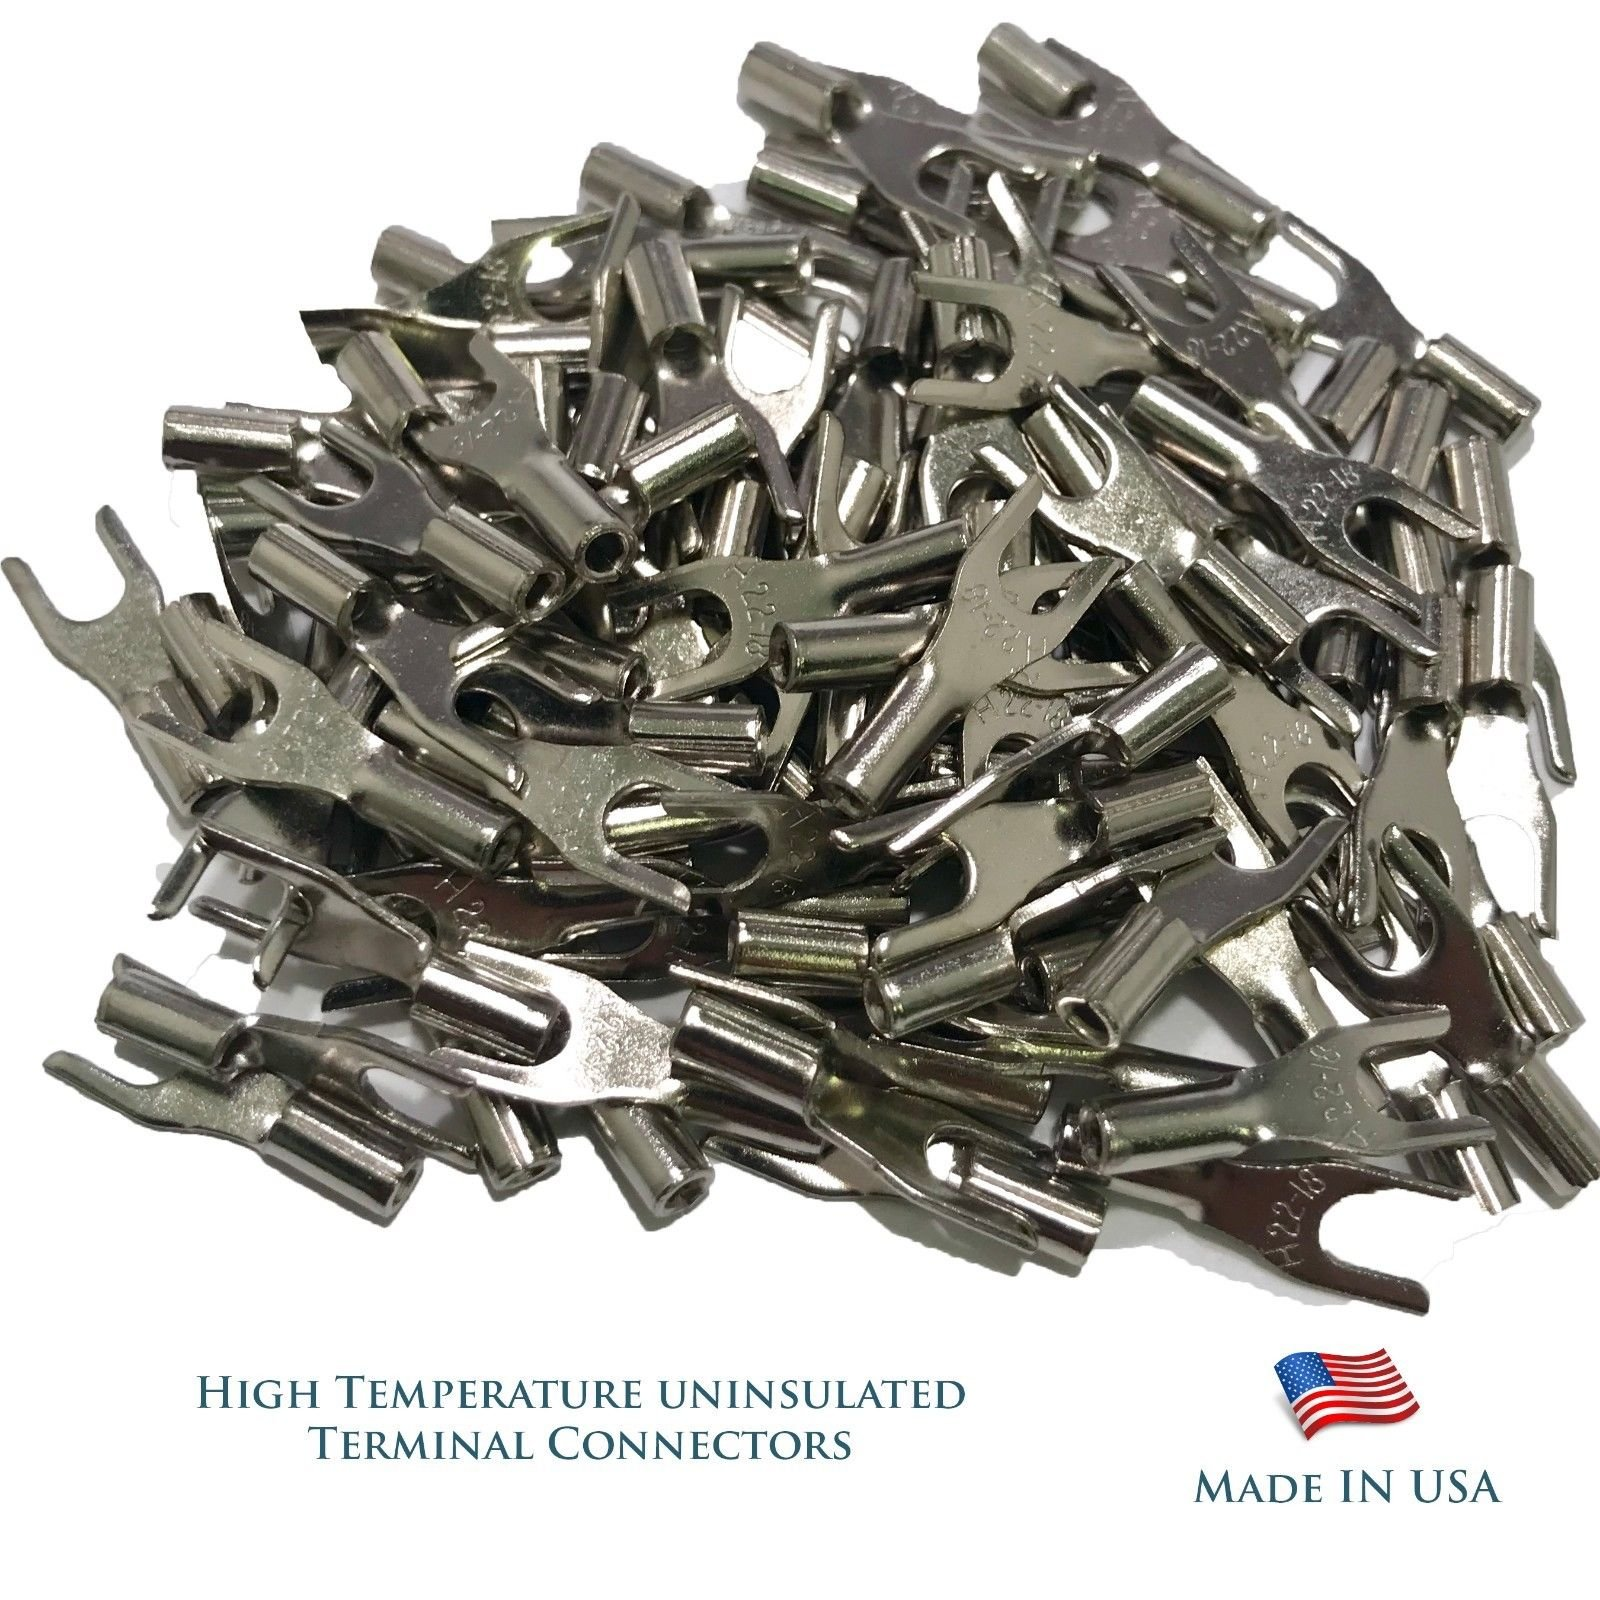 Sherco-Auto High Temperature 100 Pieces Terminal Connectors 16-14 AWG Gauge #8 Spade - USA Made by Sherco-Auto